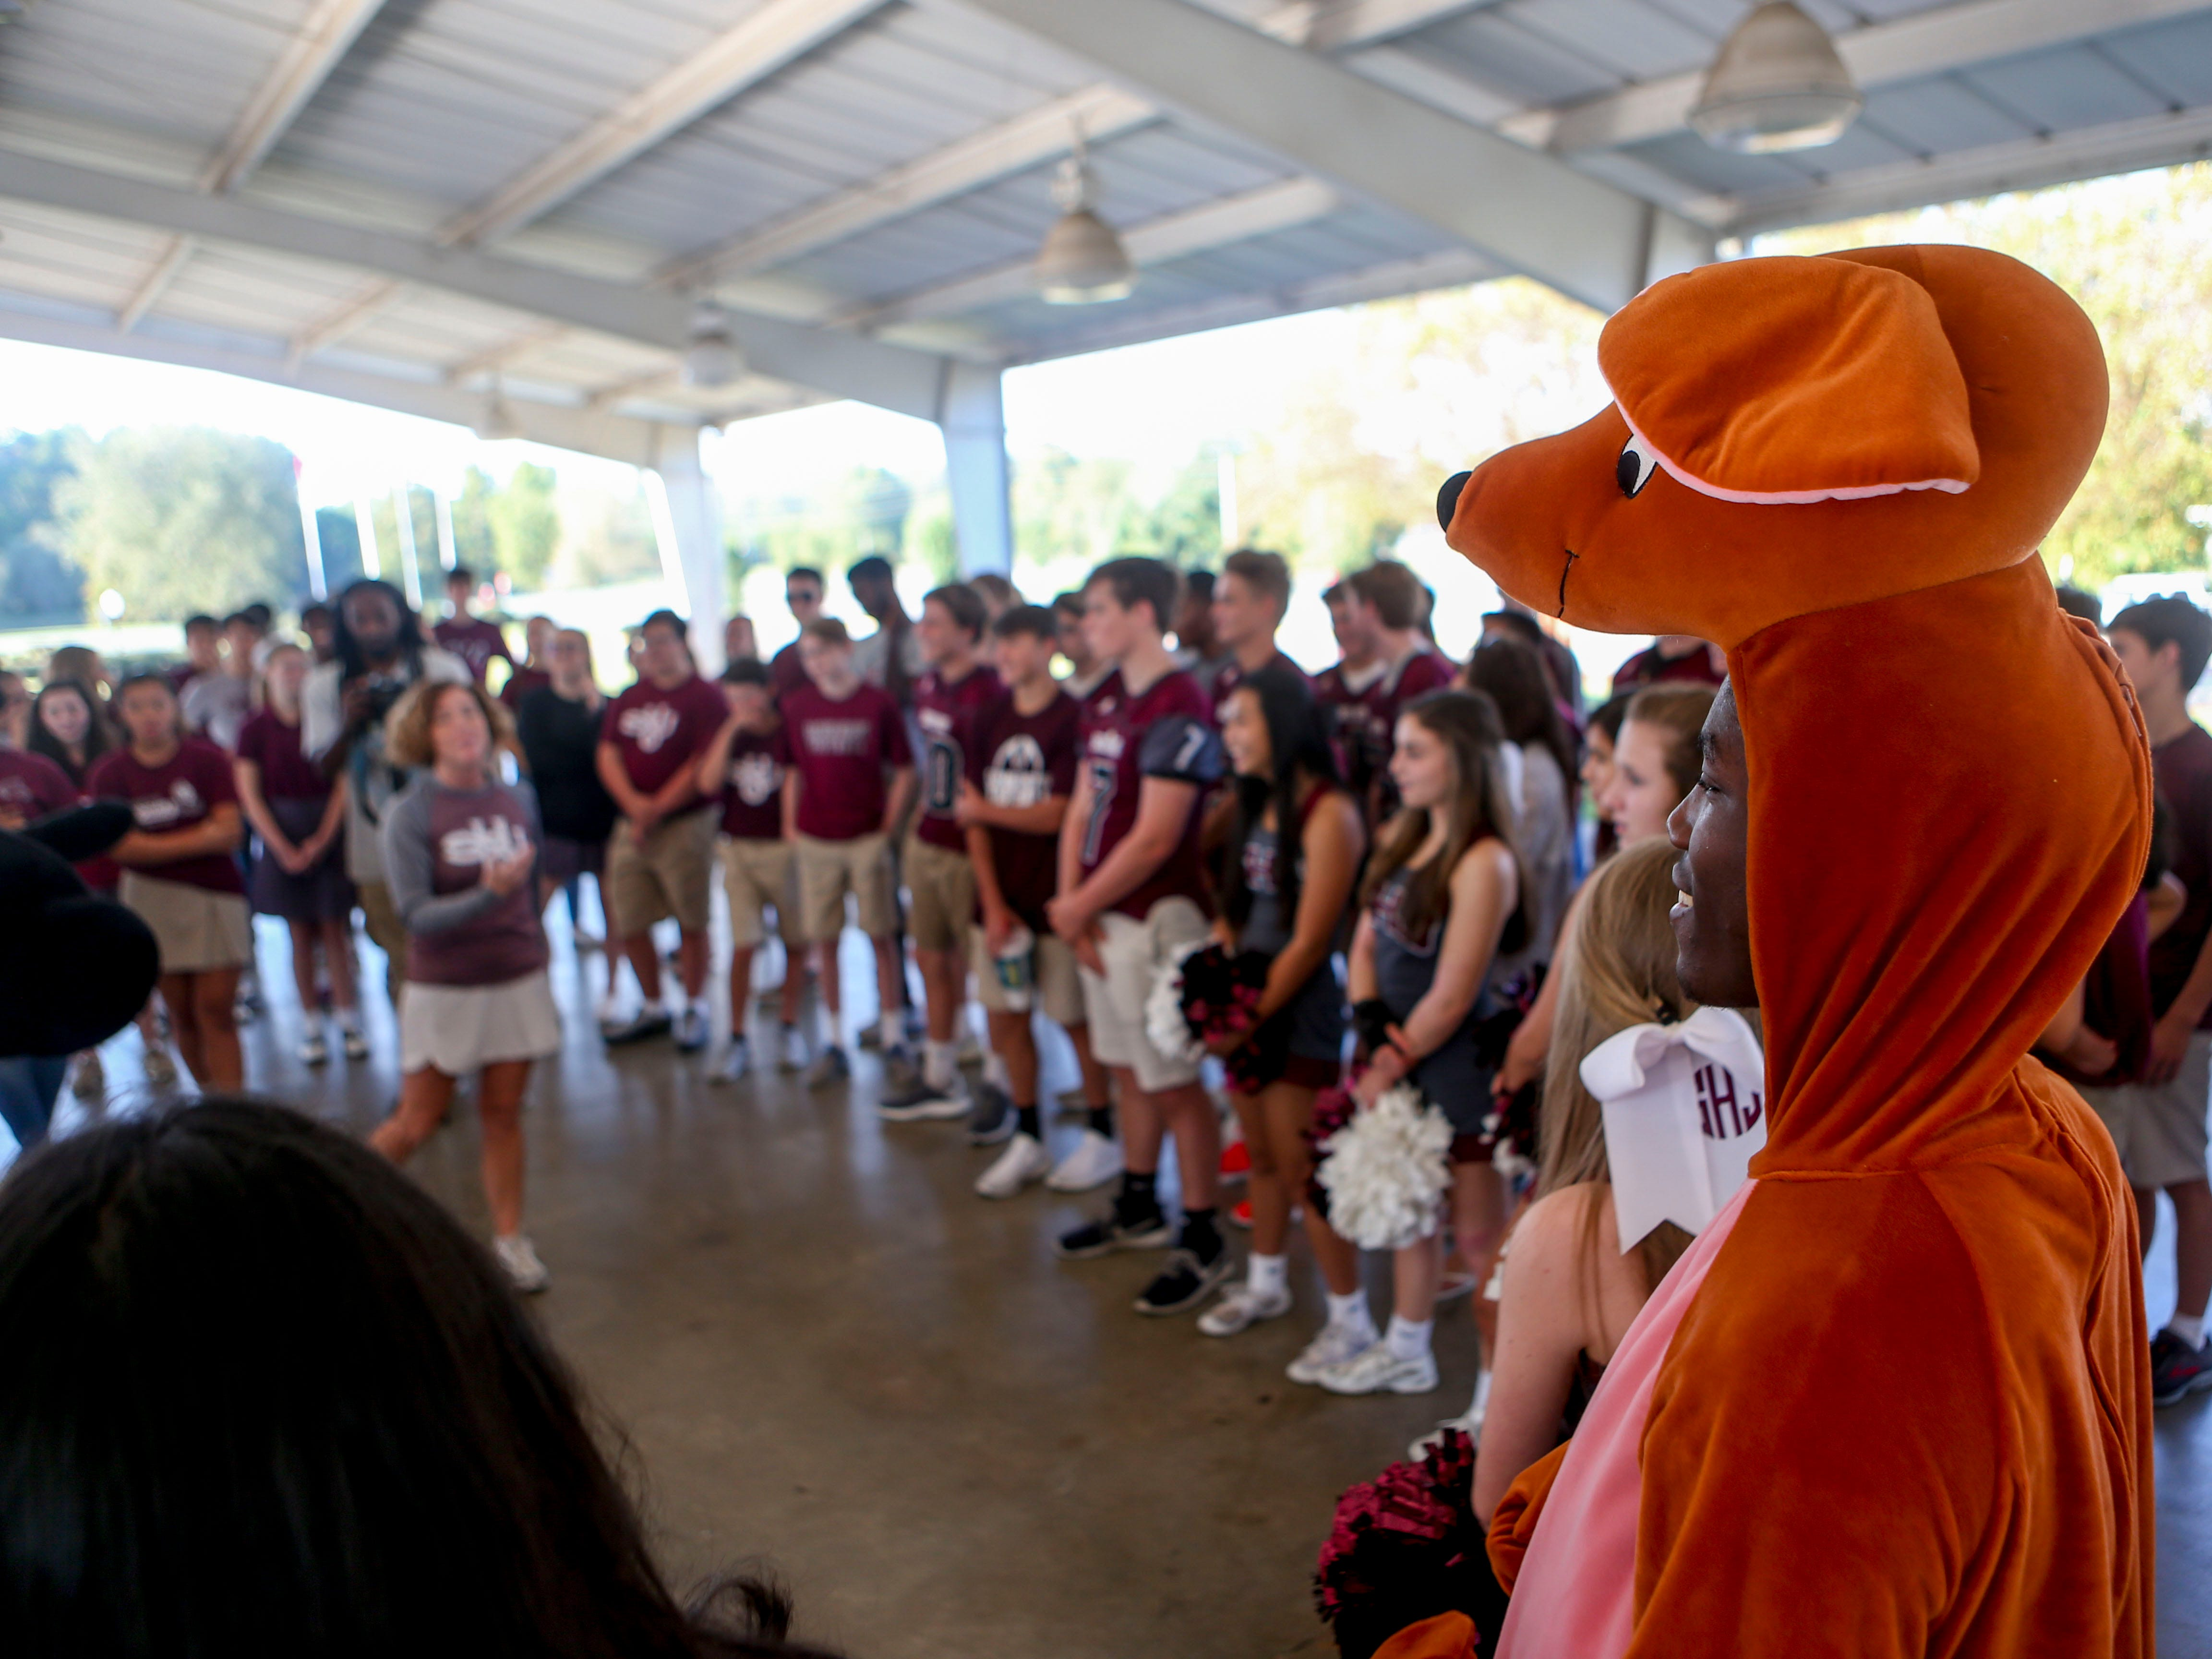 Roo from Winnie the Pooh stands in a circle before an opening prayer at the Day of Champions celebration held at Jackson Fairgrounds Park in Jackson, Tenn., on Wednesday, Sept. 19, 2018.